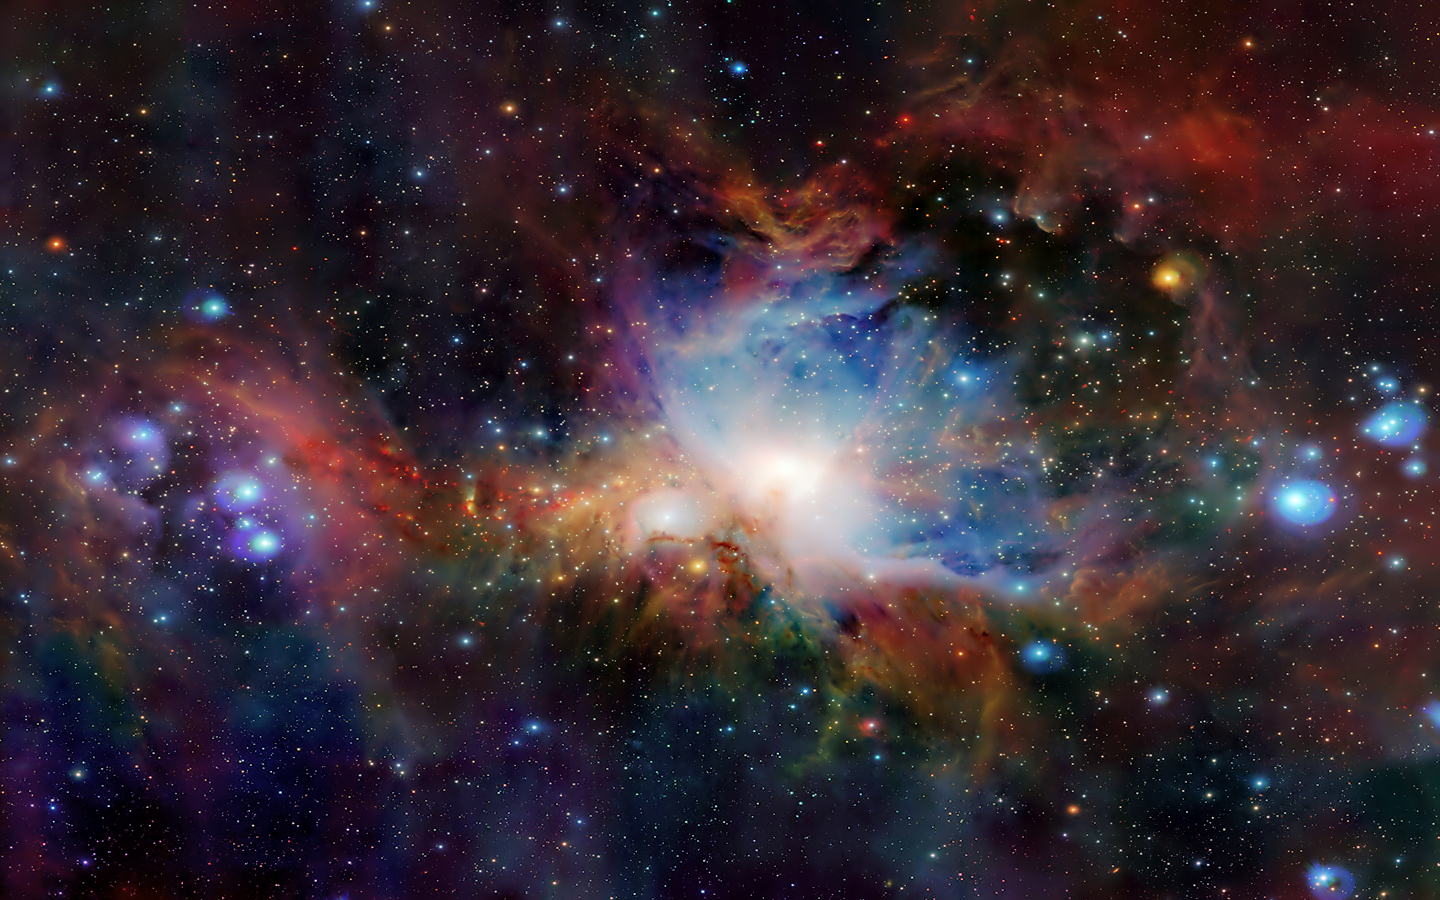 http://3.bp.blogspot.com/-zYR8J1idWgI/T9EcPHT_7cI/AAAAAAAAAn0/WiLQreLym6Y/s1600/Wallpapers-room_com___Orion_Nebula_Wallpaper_by_GreasyGrandma_1440x900.png